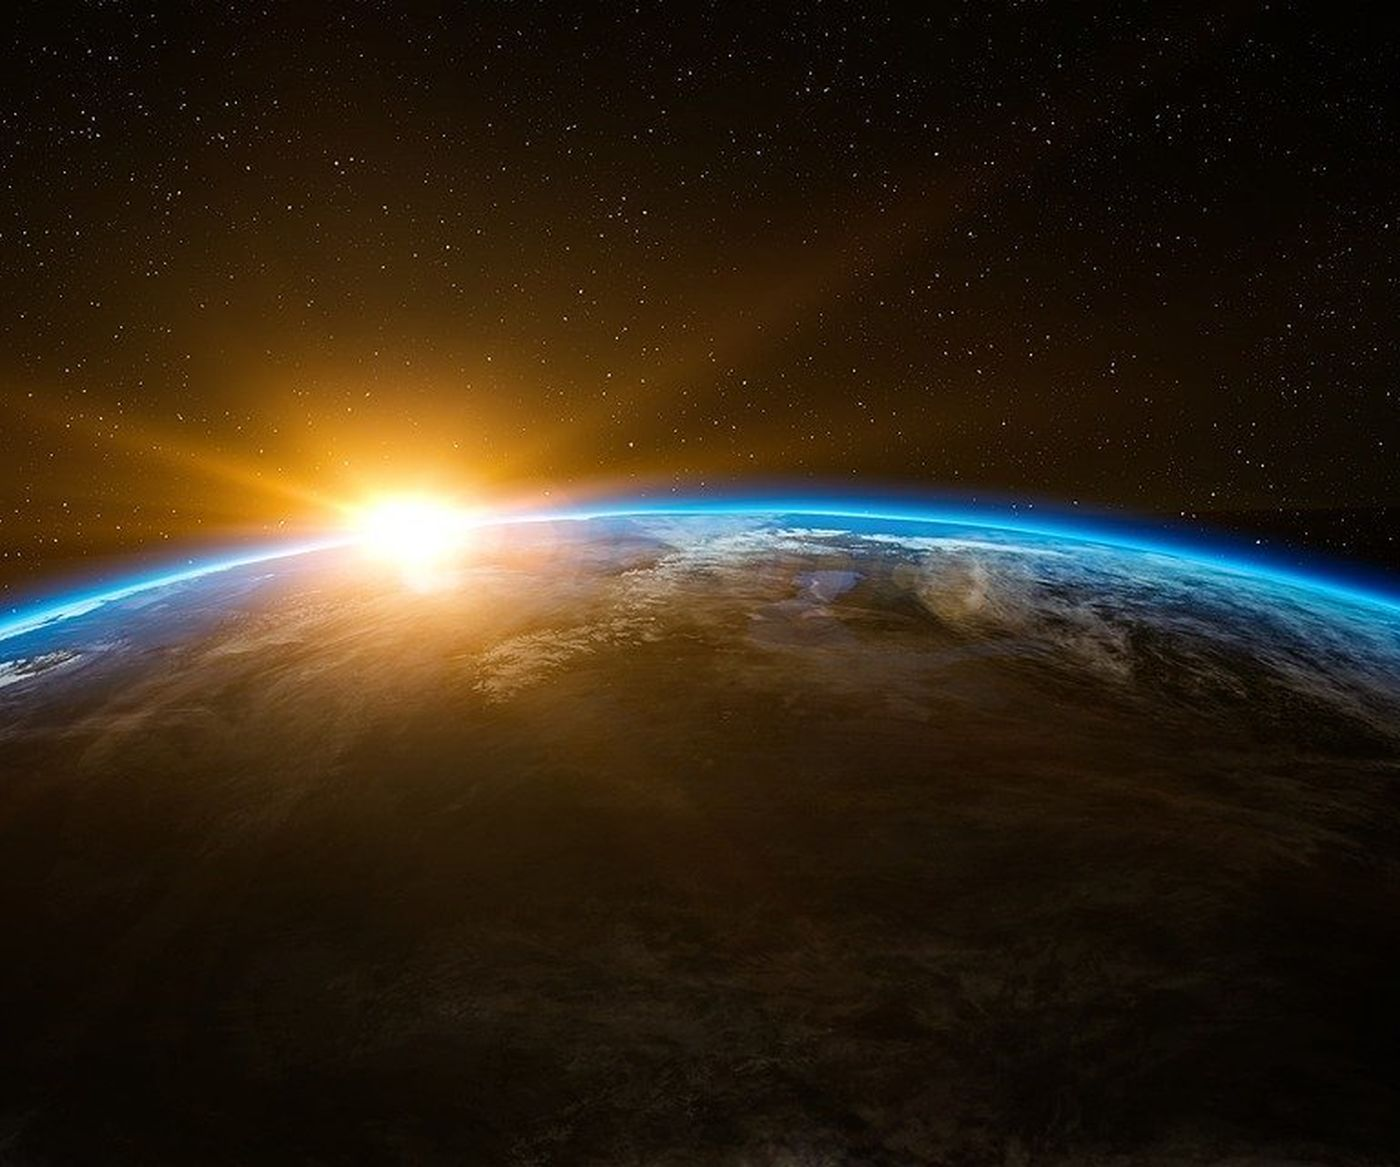 Sunrise over the curve of the Earth